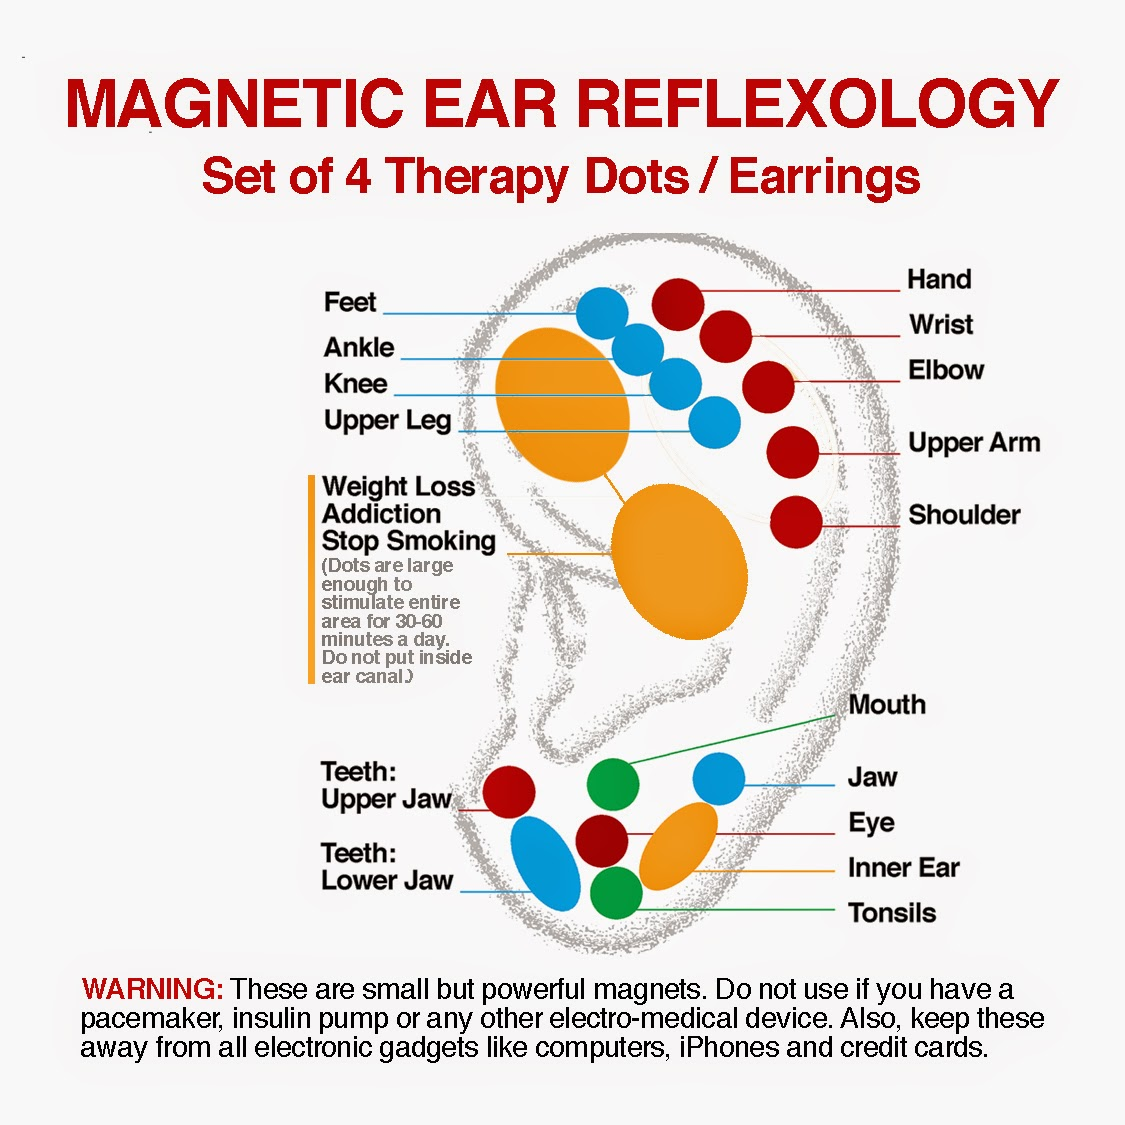 Forum on this topic: How to Read an Ear Reflexology Chart, how-to-read-an-ear-reflexology-chart/